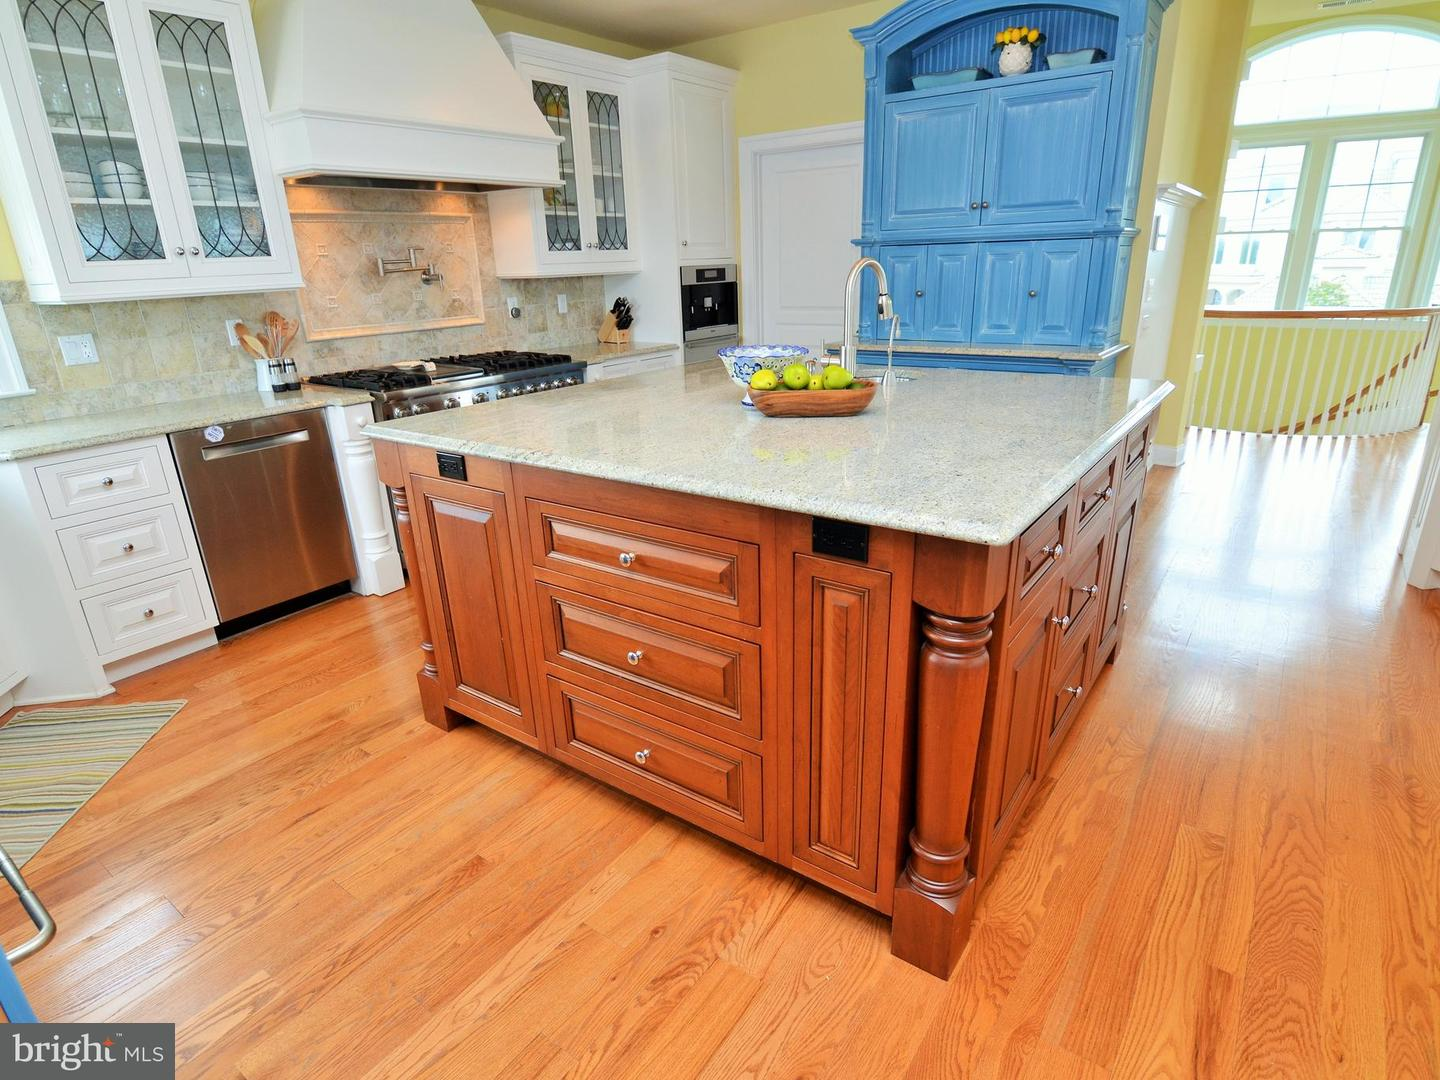 1002293530-300500807923-2018-09-25-15-08-25 31 Hall Ave | Rehoboth Beach, De Real Estate For Sale | MLS# 1002293530  - Suzanne Macnab